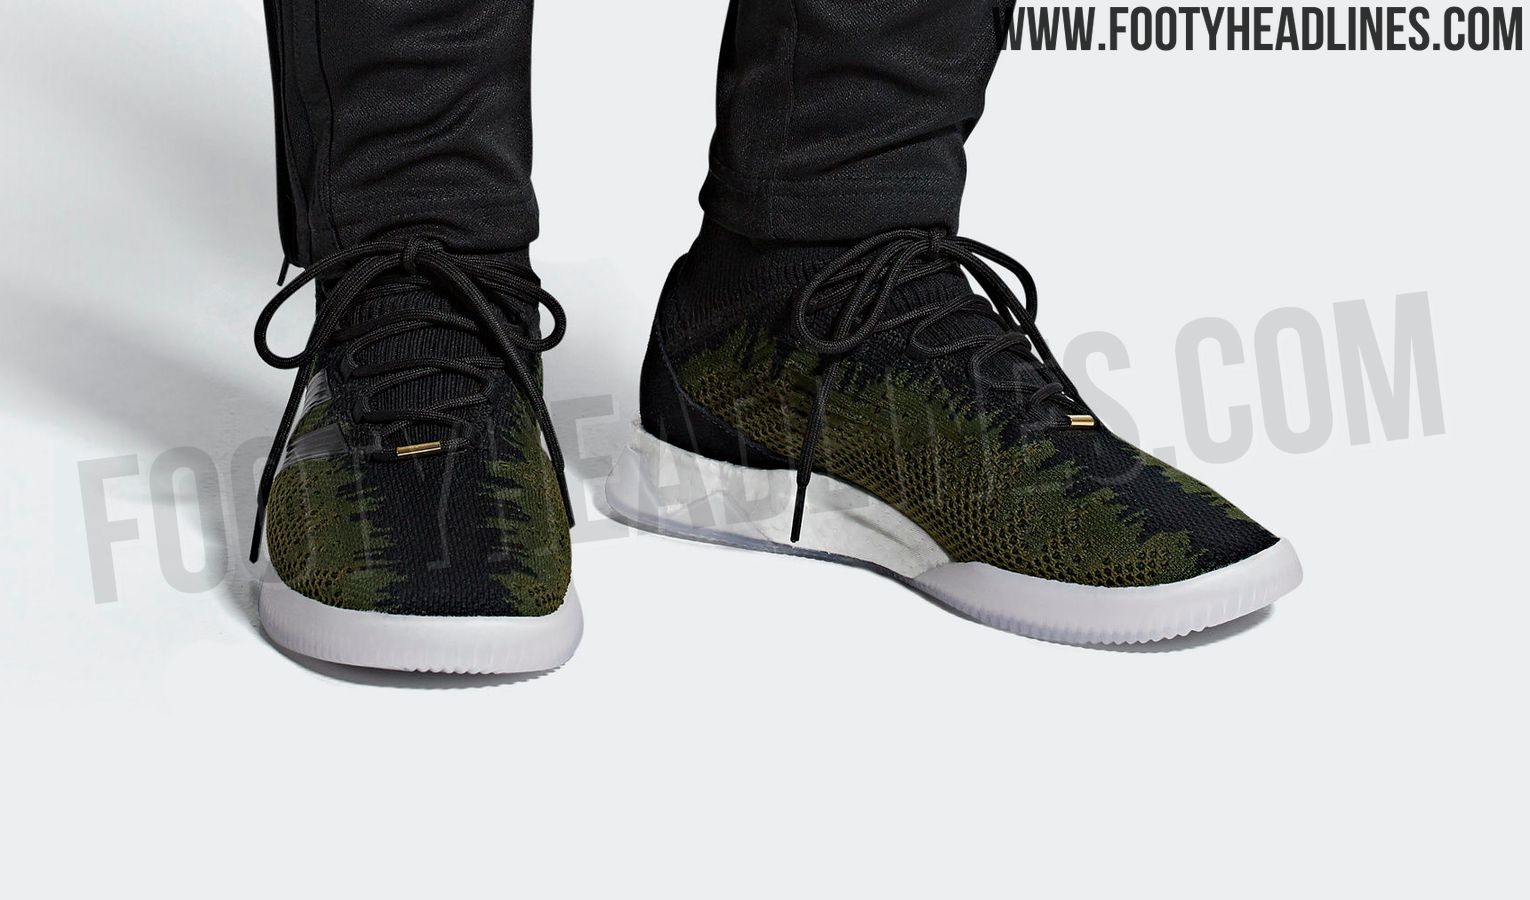 cbd5d46ab Adidas Predator Paul Pogba Season 4 Trainers Revealed - Footy Headlines